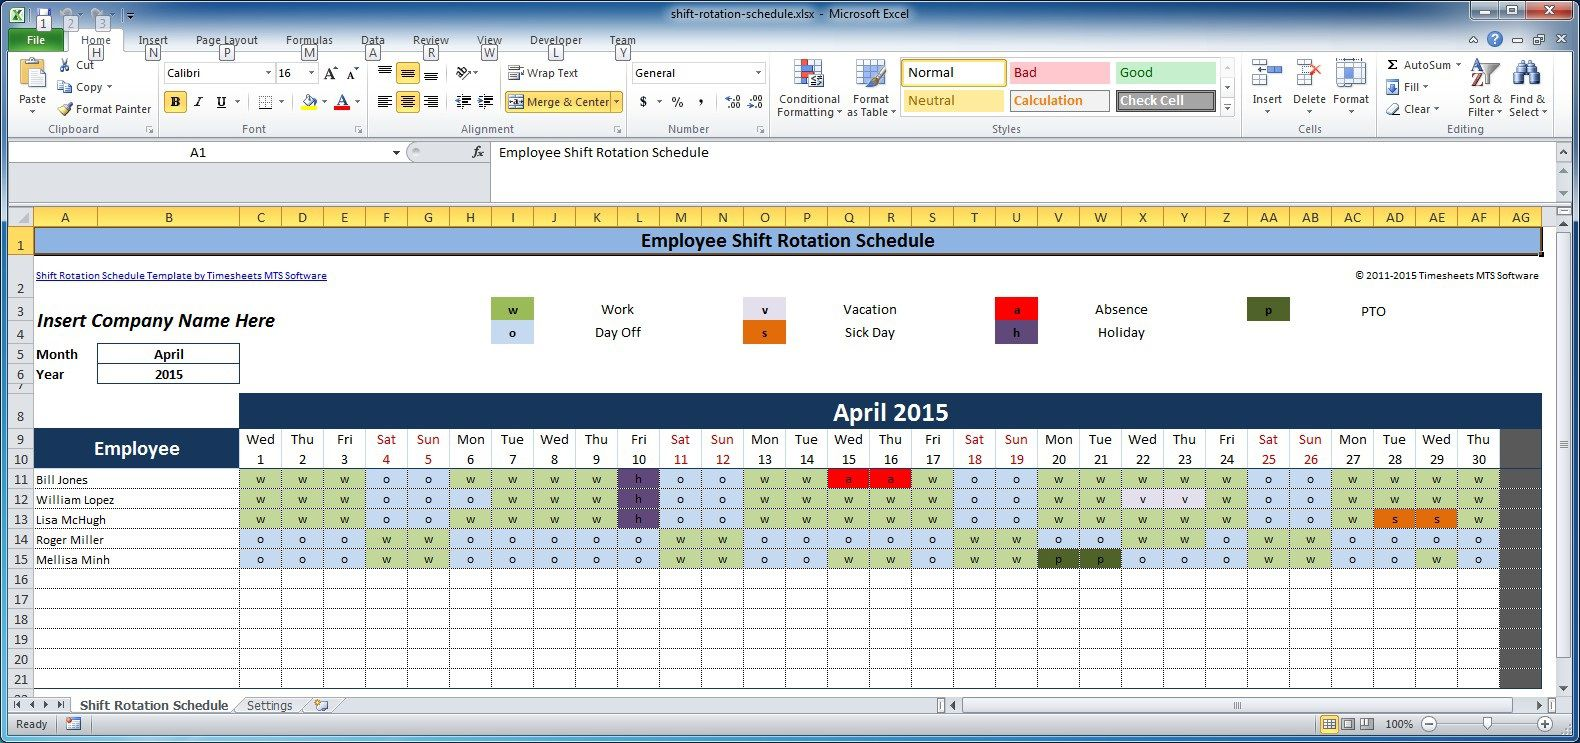 004 Surprising Free Employee Work Schedule Template High Def  Templates Monthly Excel Weekly PdfFull